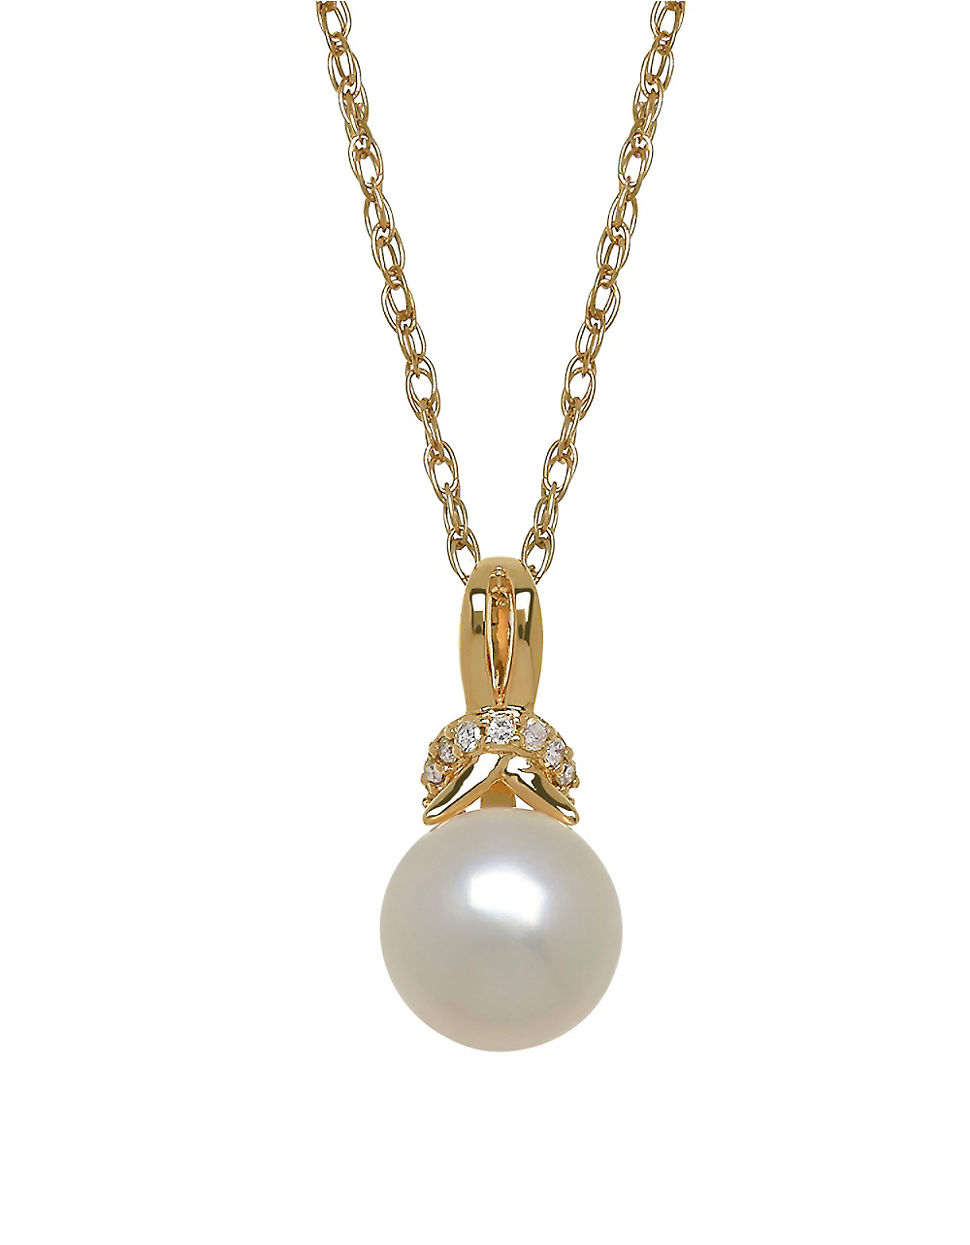 lord 8mm white pearl an 14k yellow gold